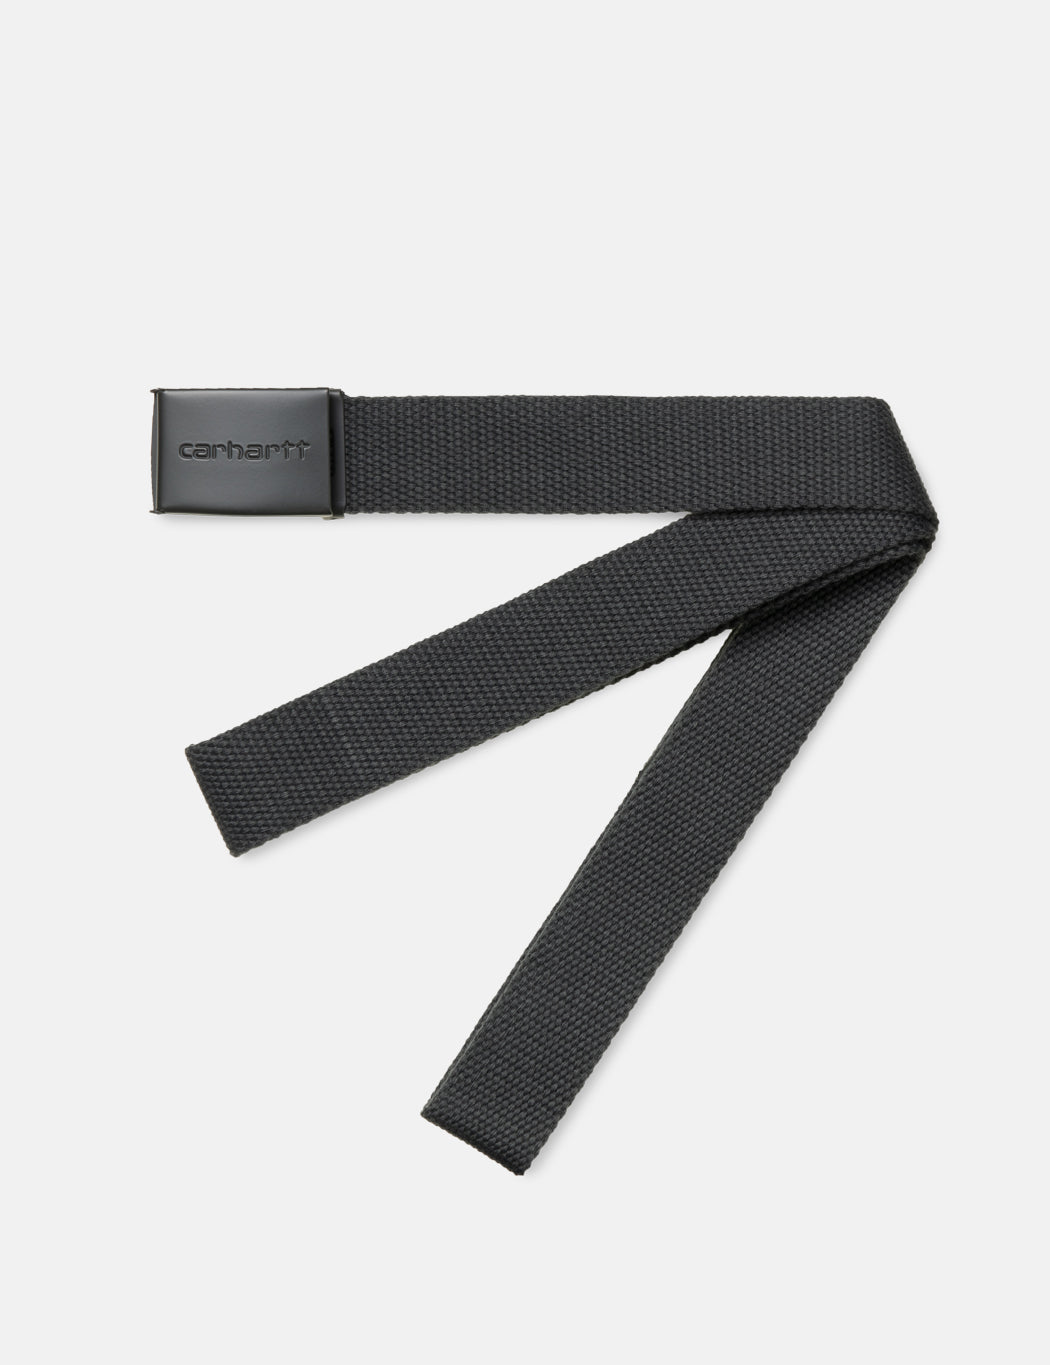 Carhartt-WIP Clip Belt Canvas (Tonal) - Blacksmith Grey | URBAN EXCESS.